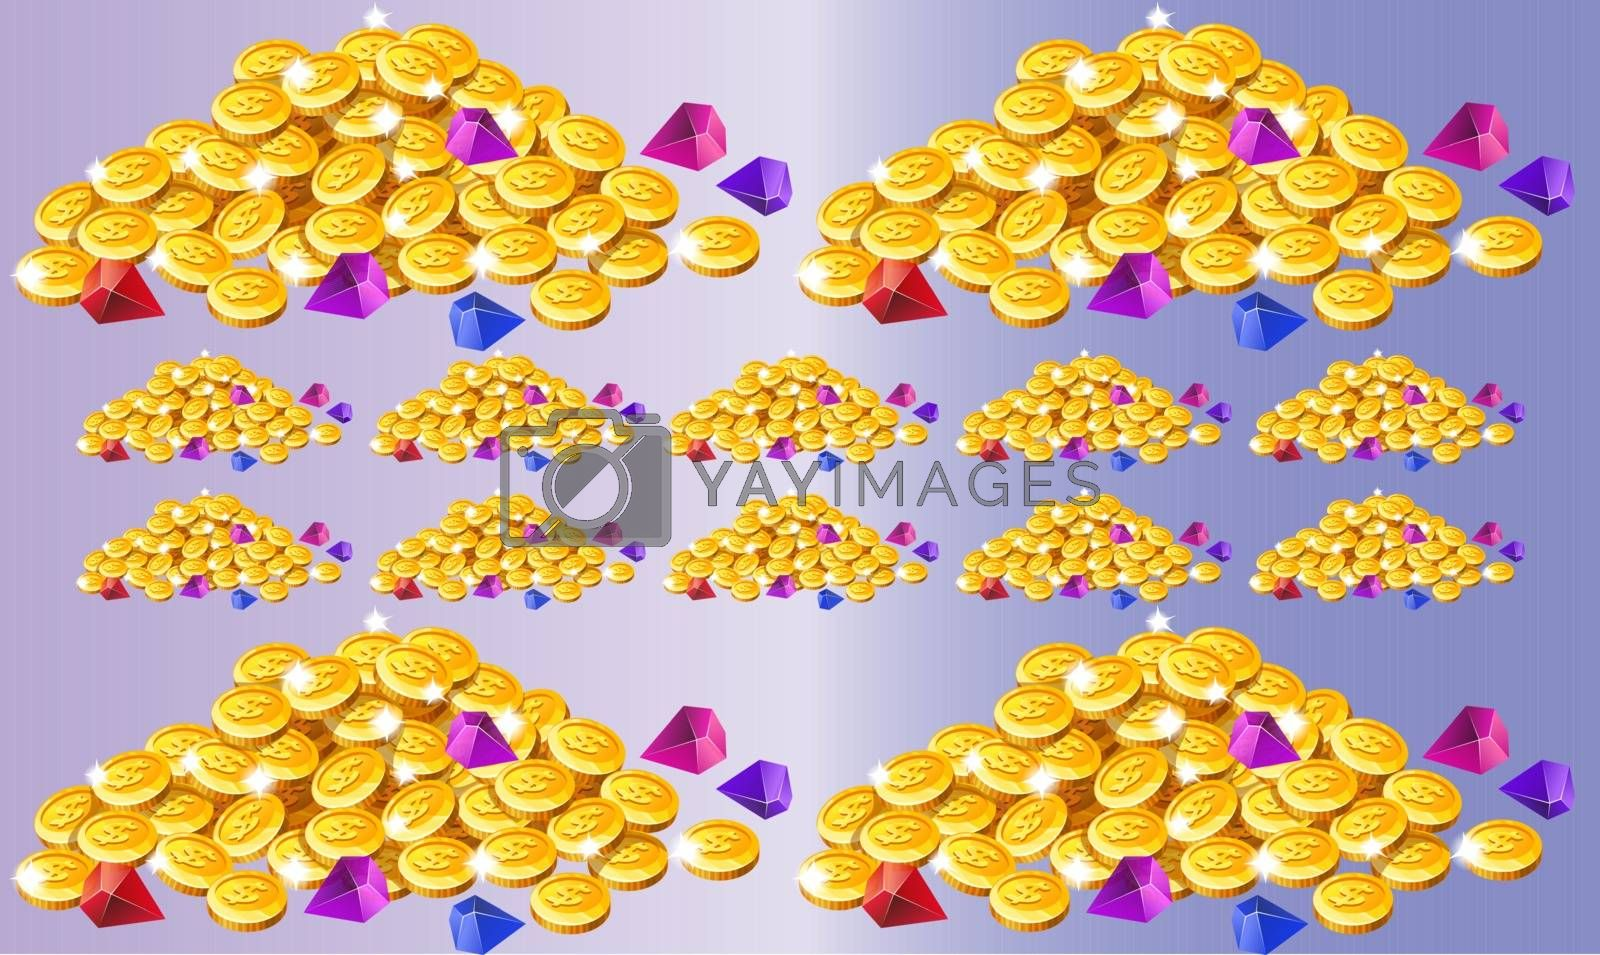 collection of coin on abstract background